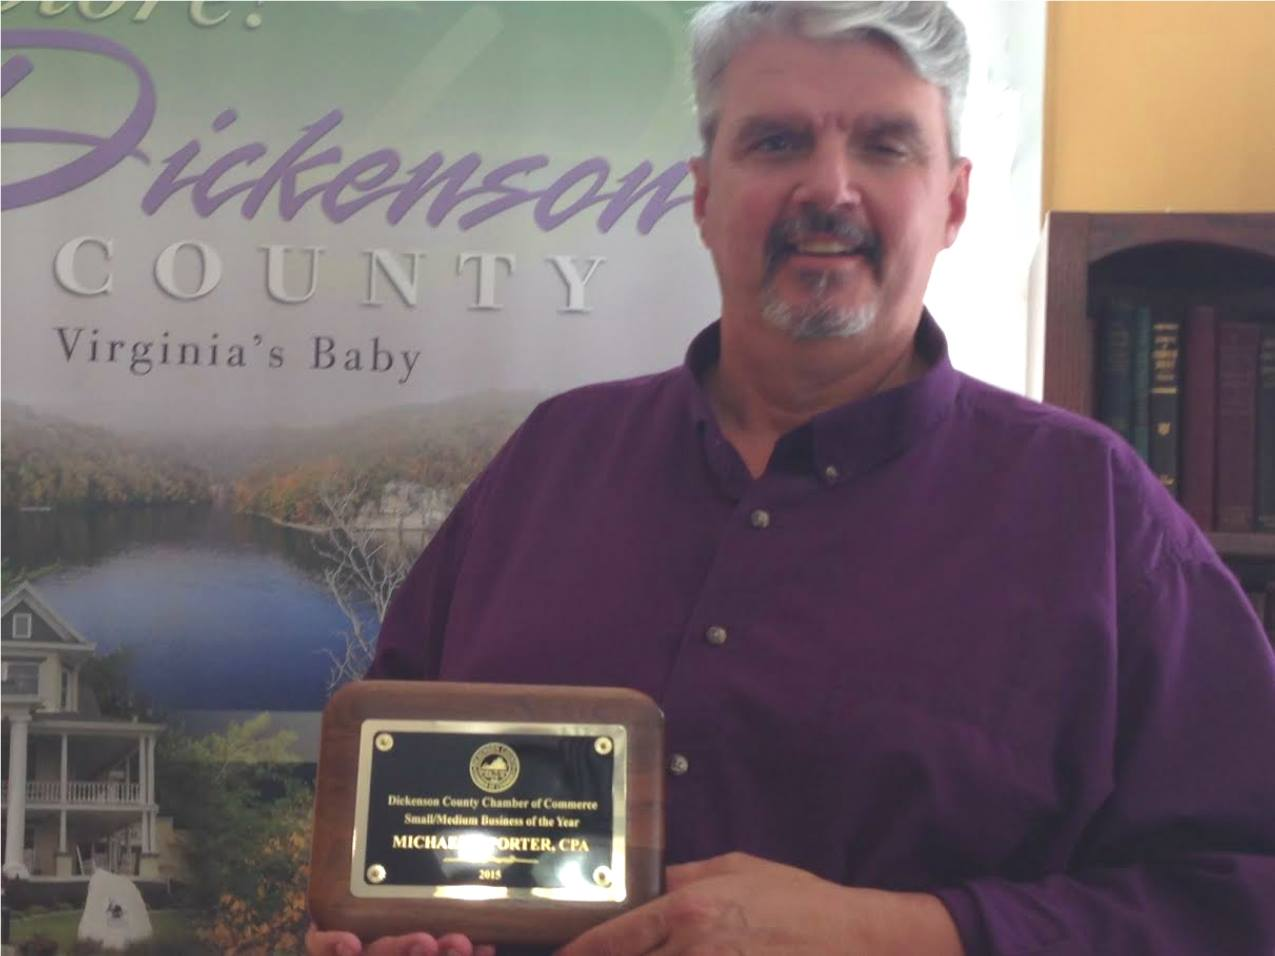 Dickenson County Chamber Small/Medium Business of the Year: Michael Porter, CPA